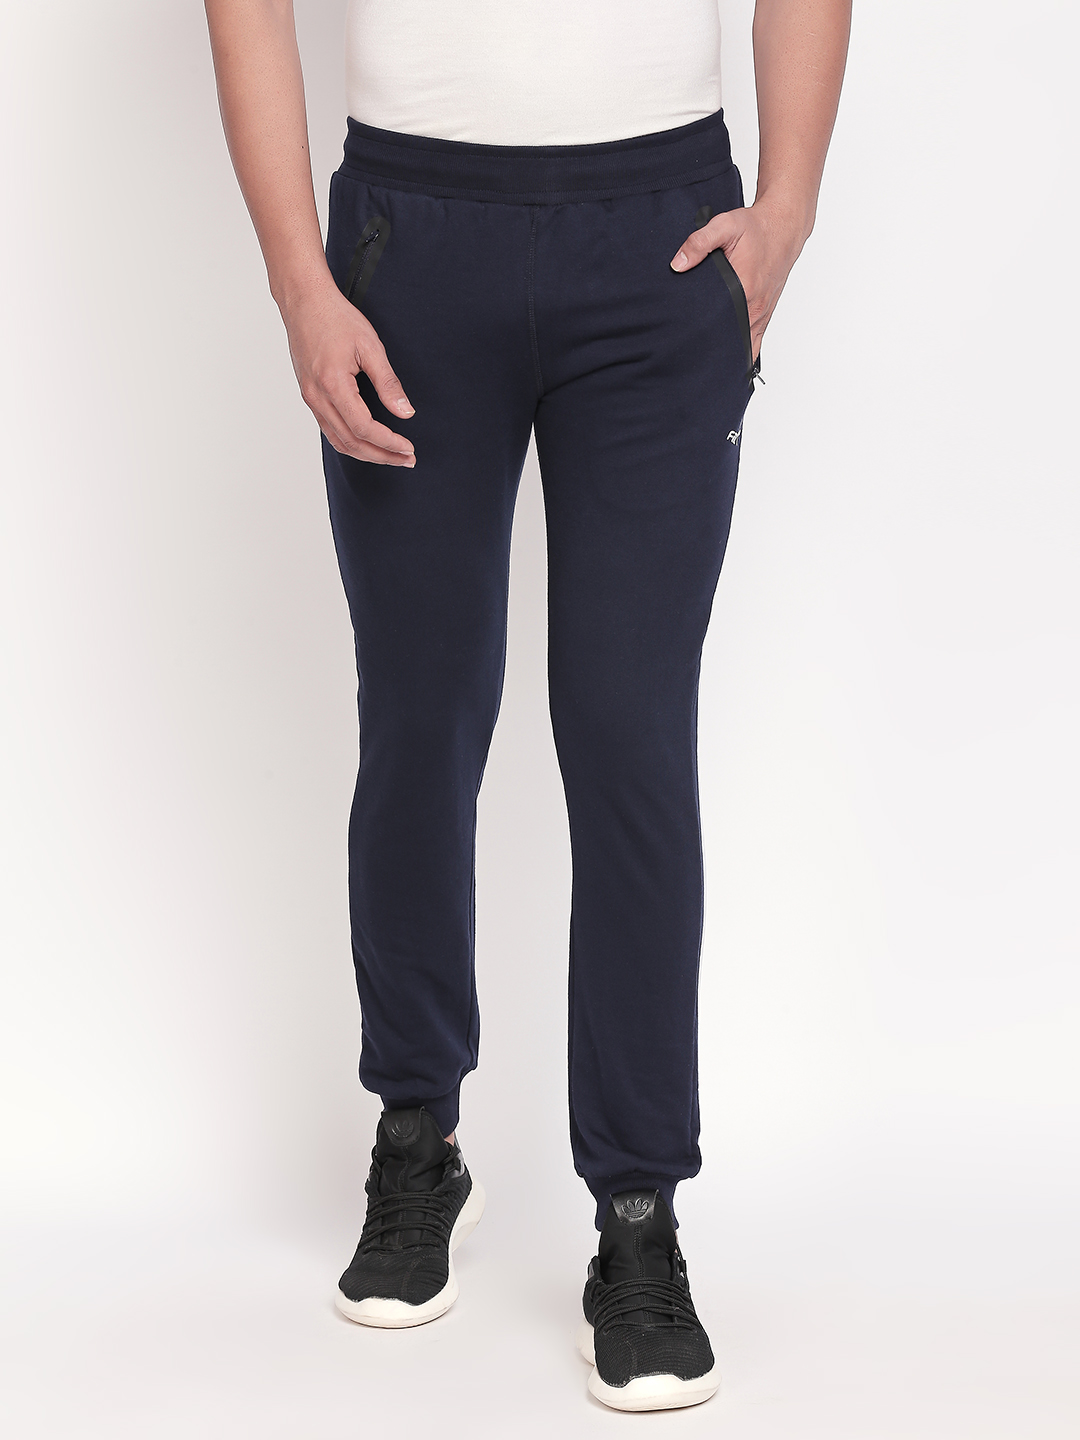 FITZ   Fitz  Cotton Navy blue Loungewear Joggers Track For Mens